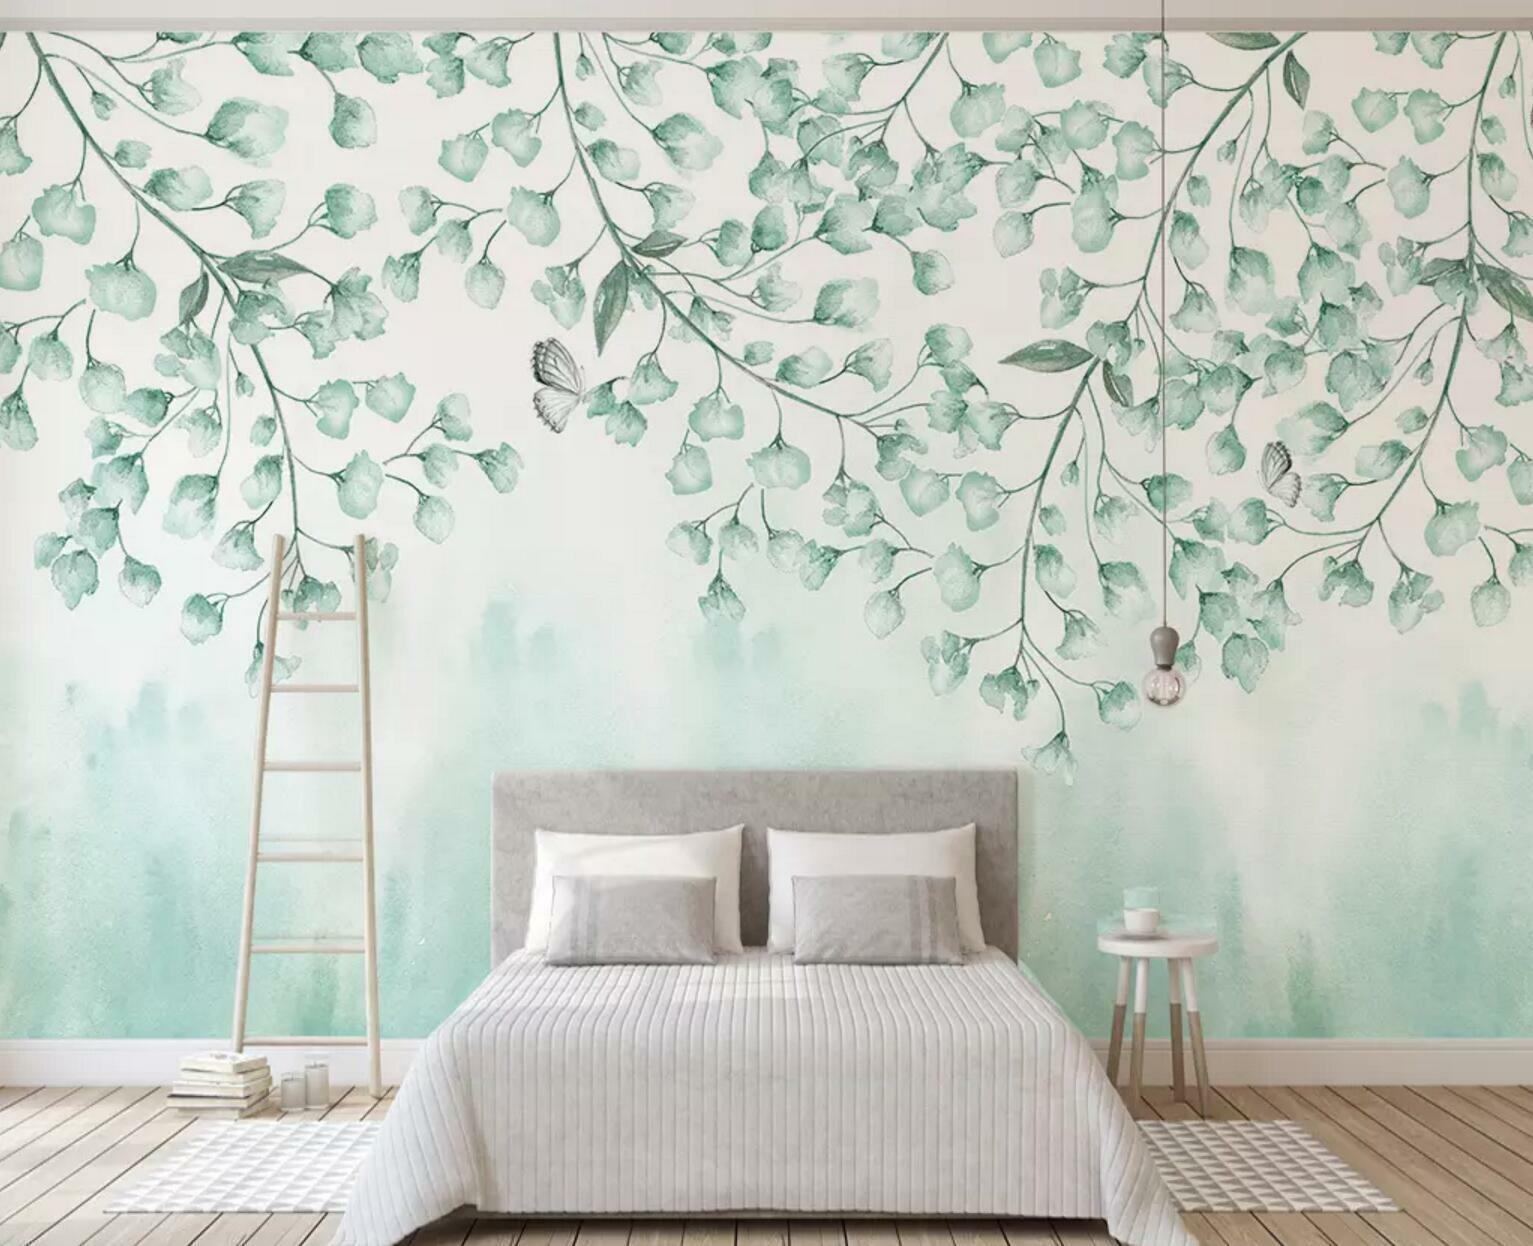 3D Leaf Painted 34 Wall Paper Exclusive MXY Wallpaper Mural Decal Indoor wall AJ